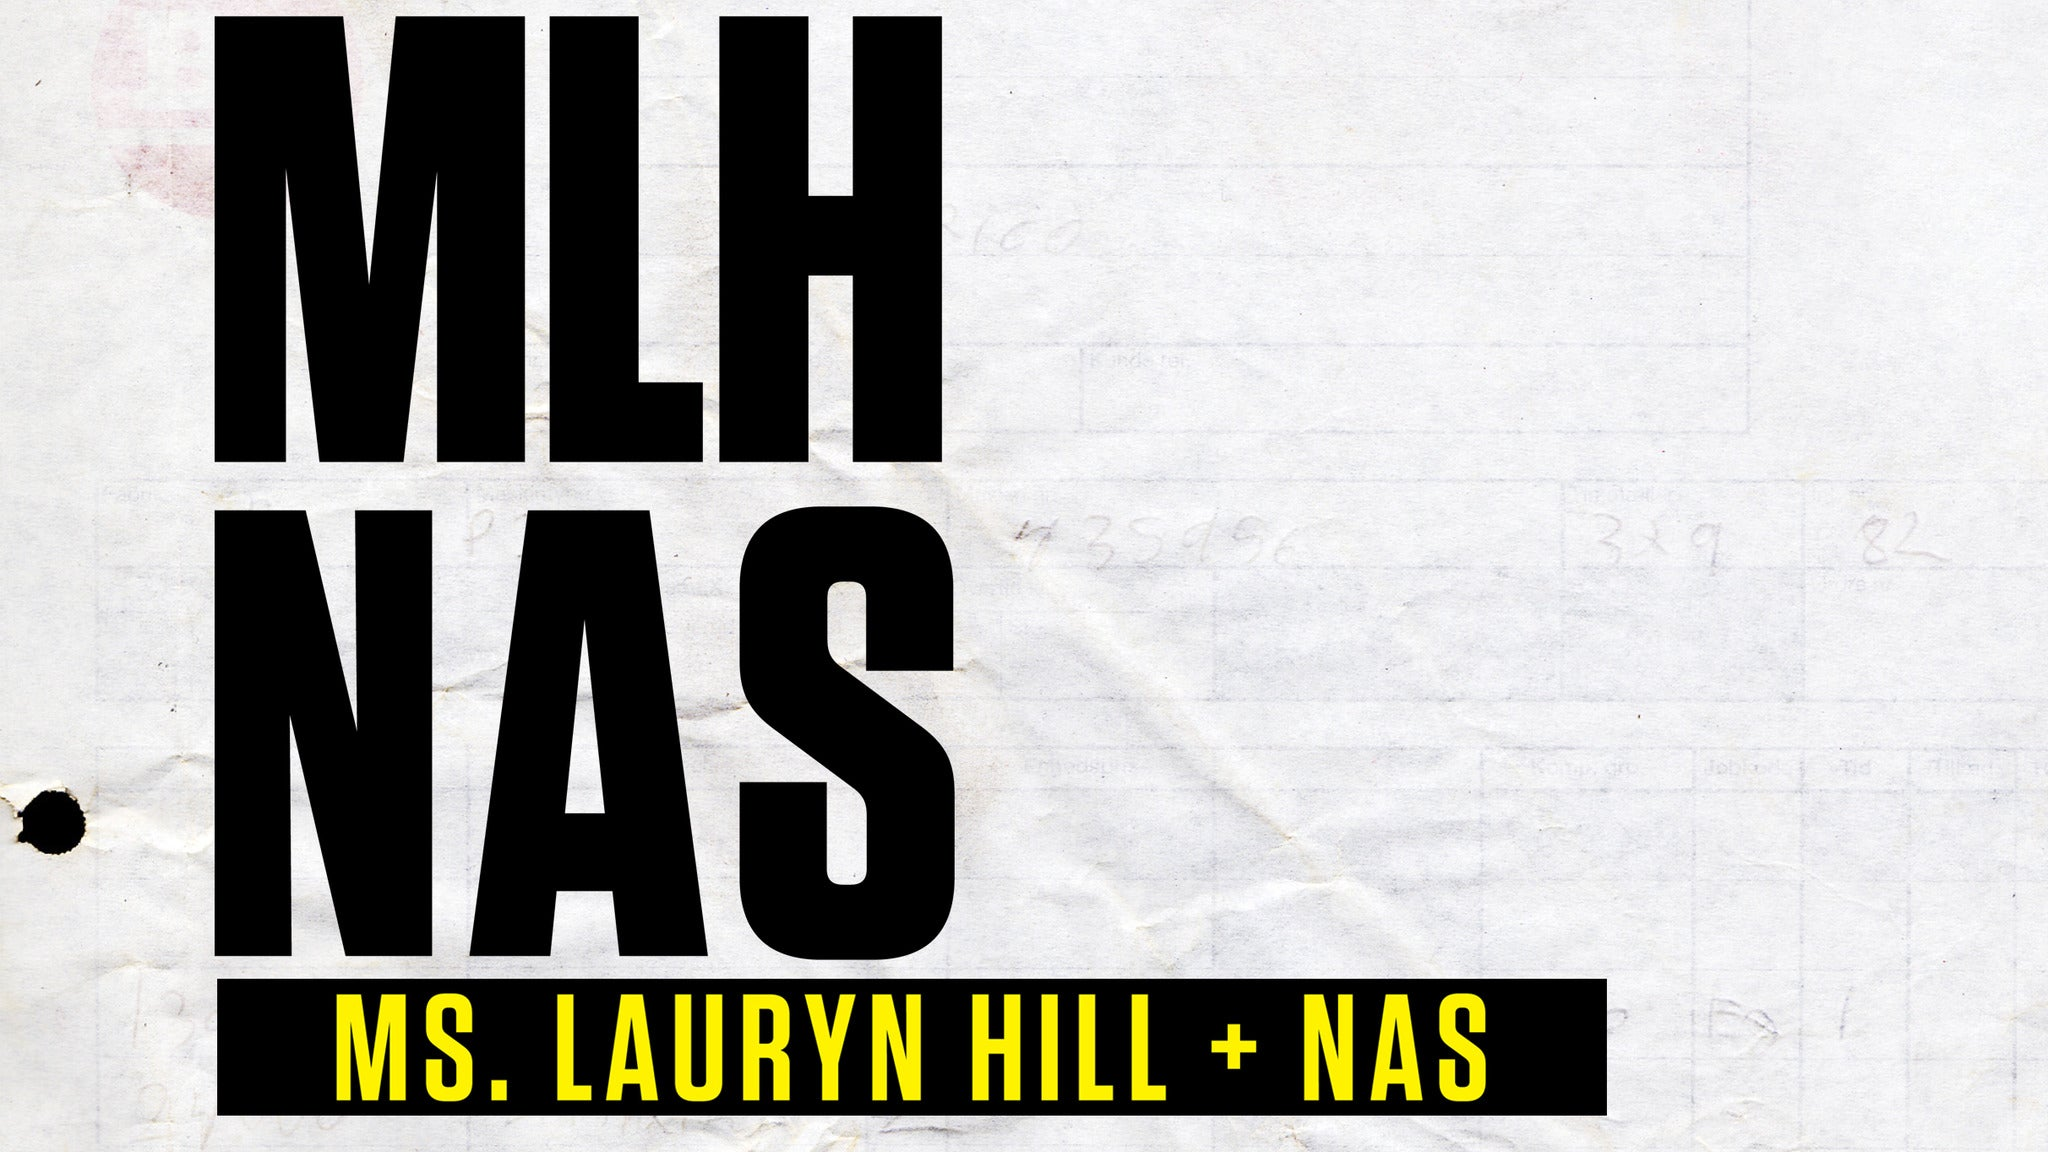 Premium Box Seats: Ms. Lauryn Hill & Nas - Austin, TX 78617